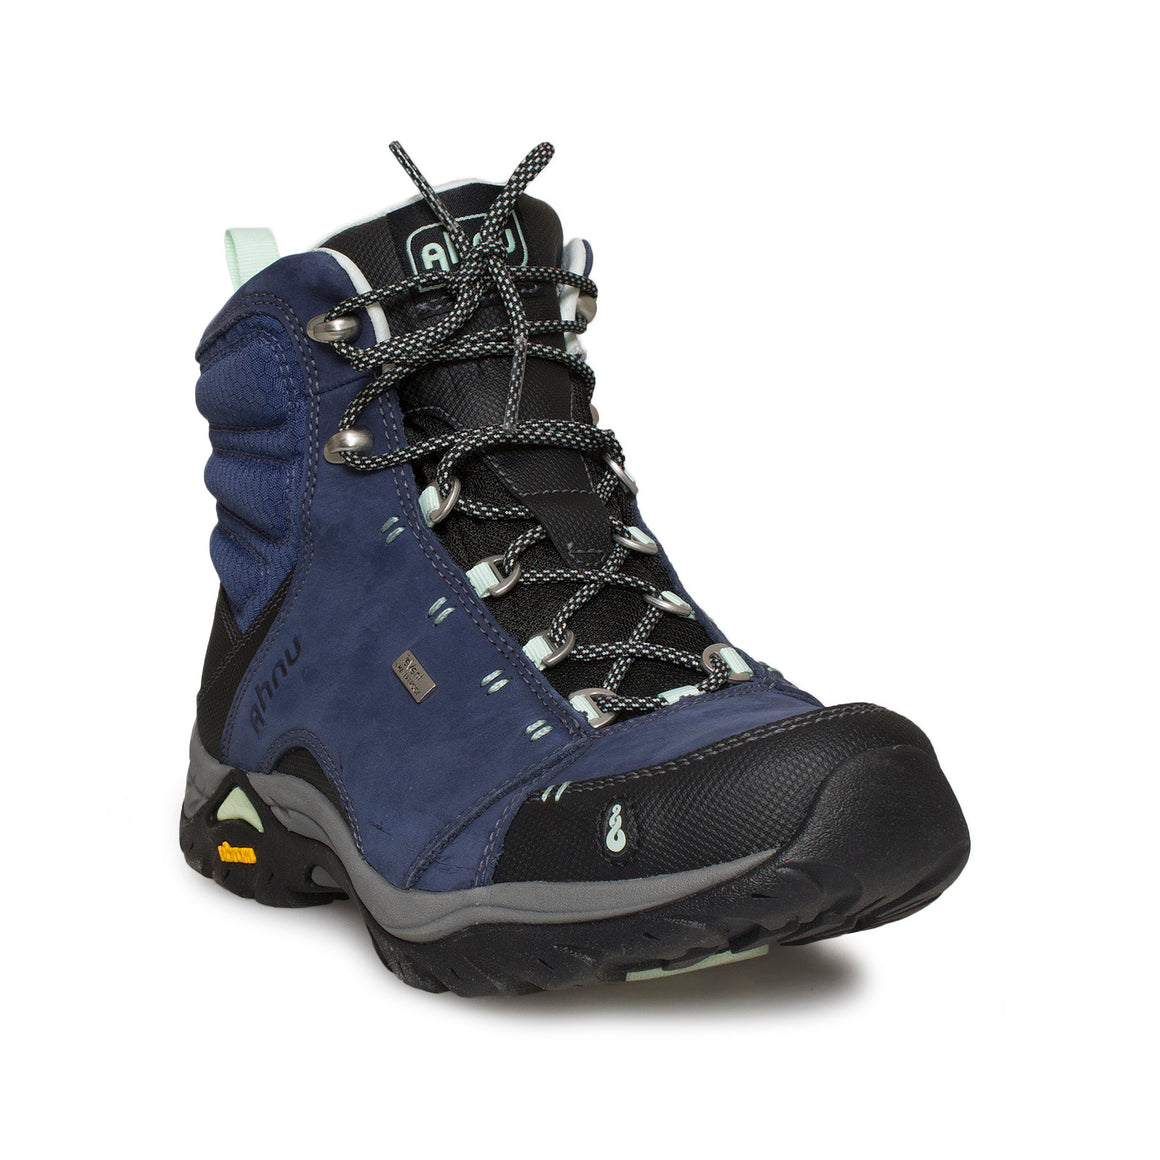 AHNU MONTARA MIDNIGHT BLUE WP HIKING BOOTS